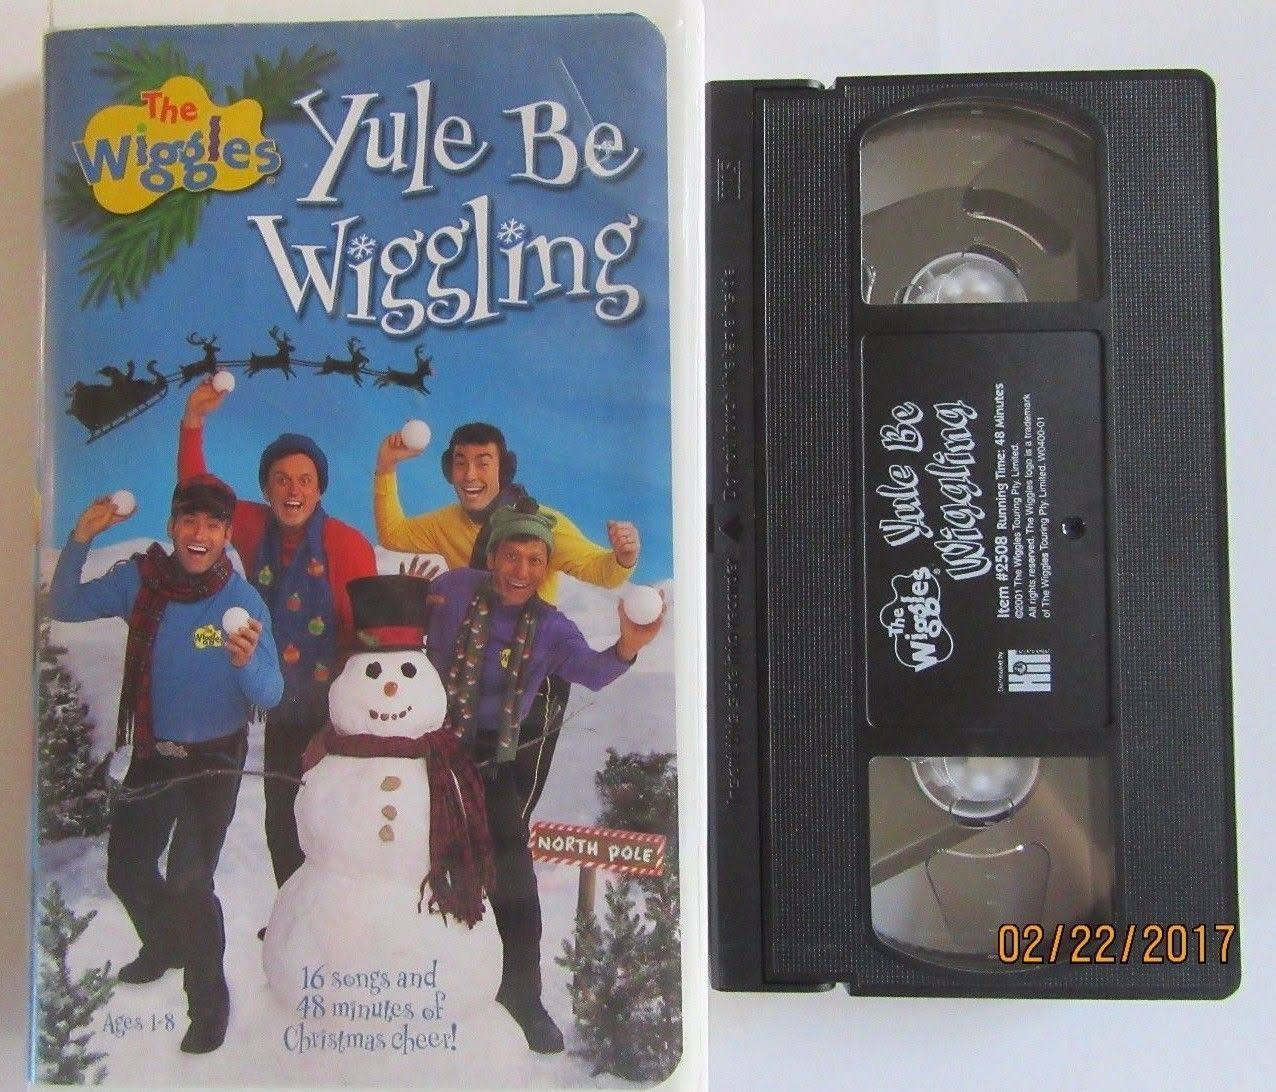 The Wiggles Yule Be Wiggling - VHS